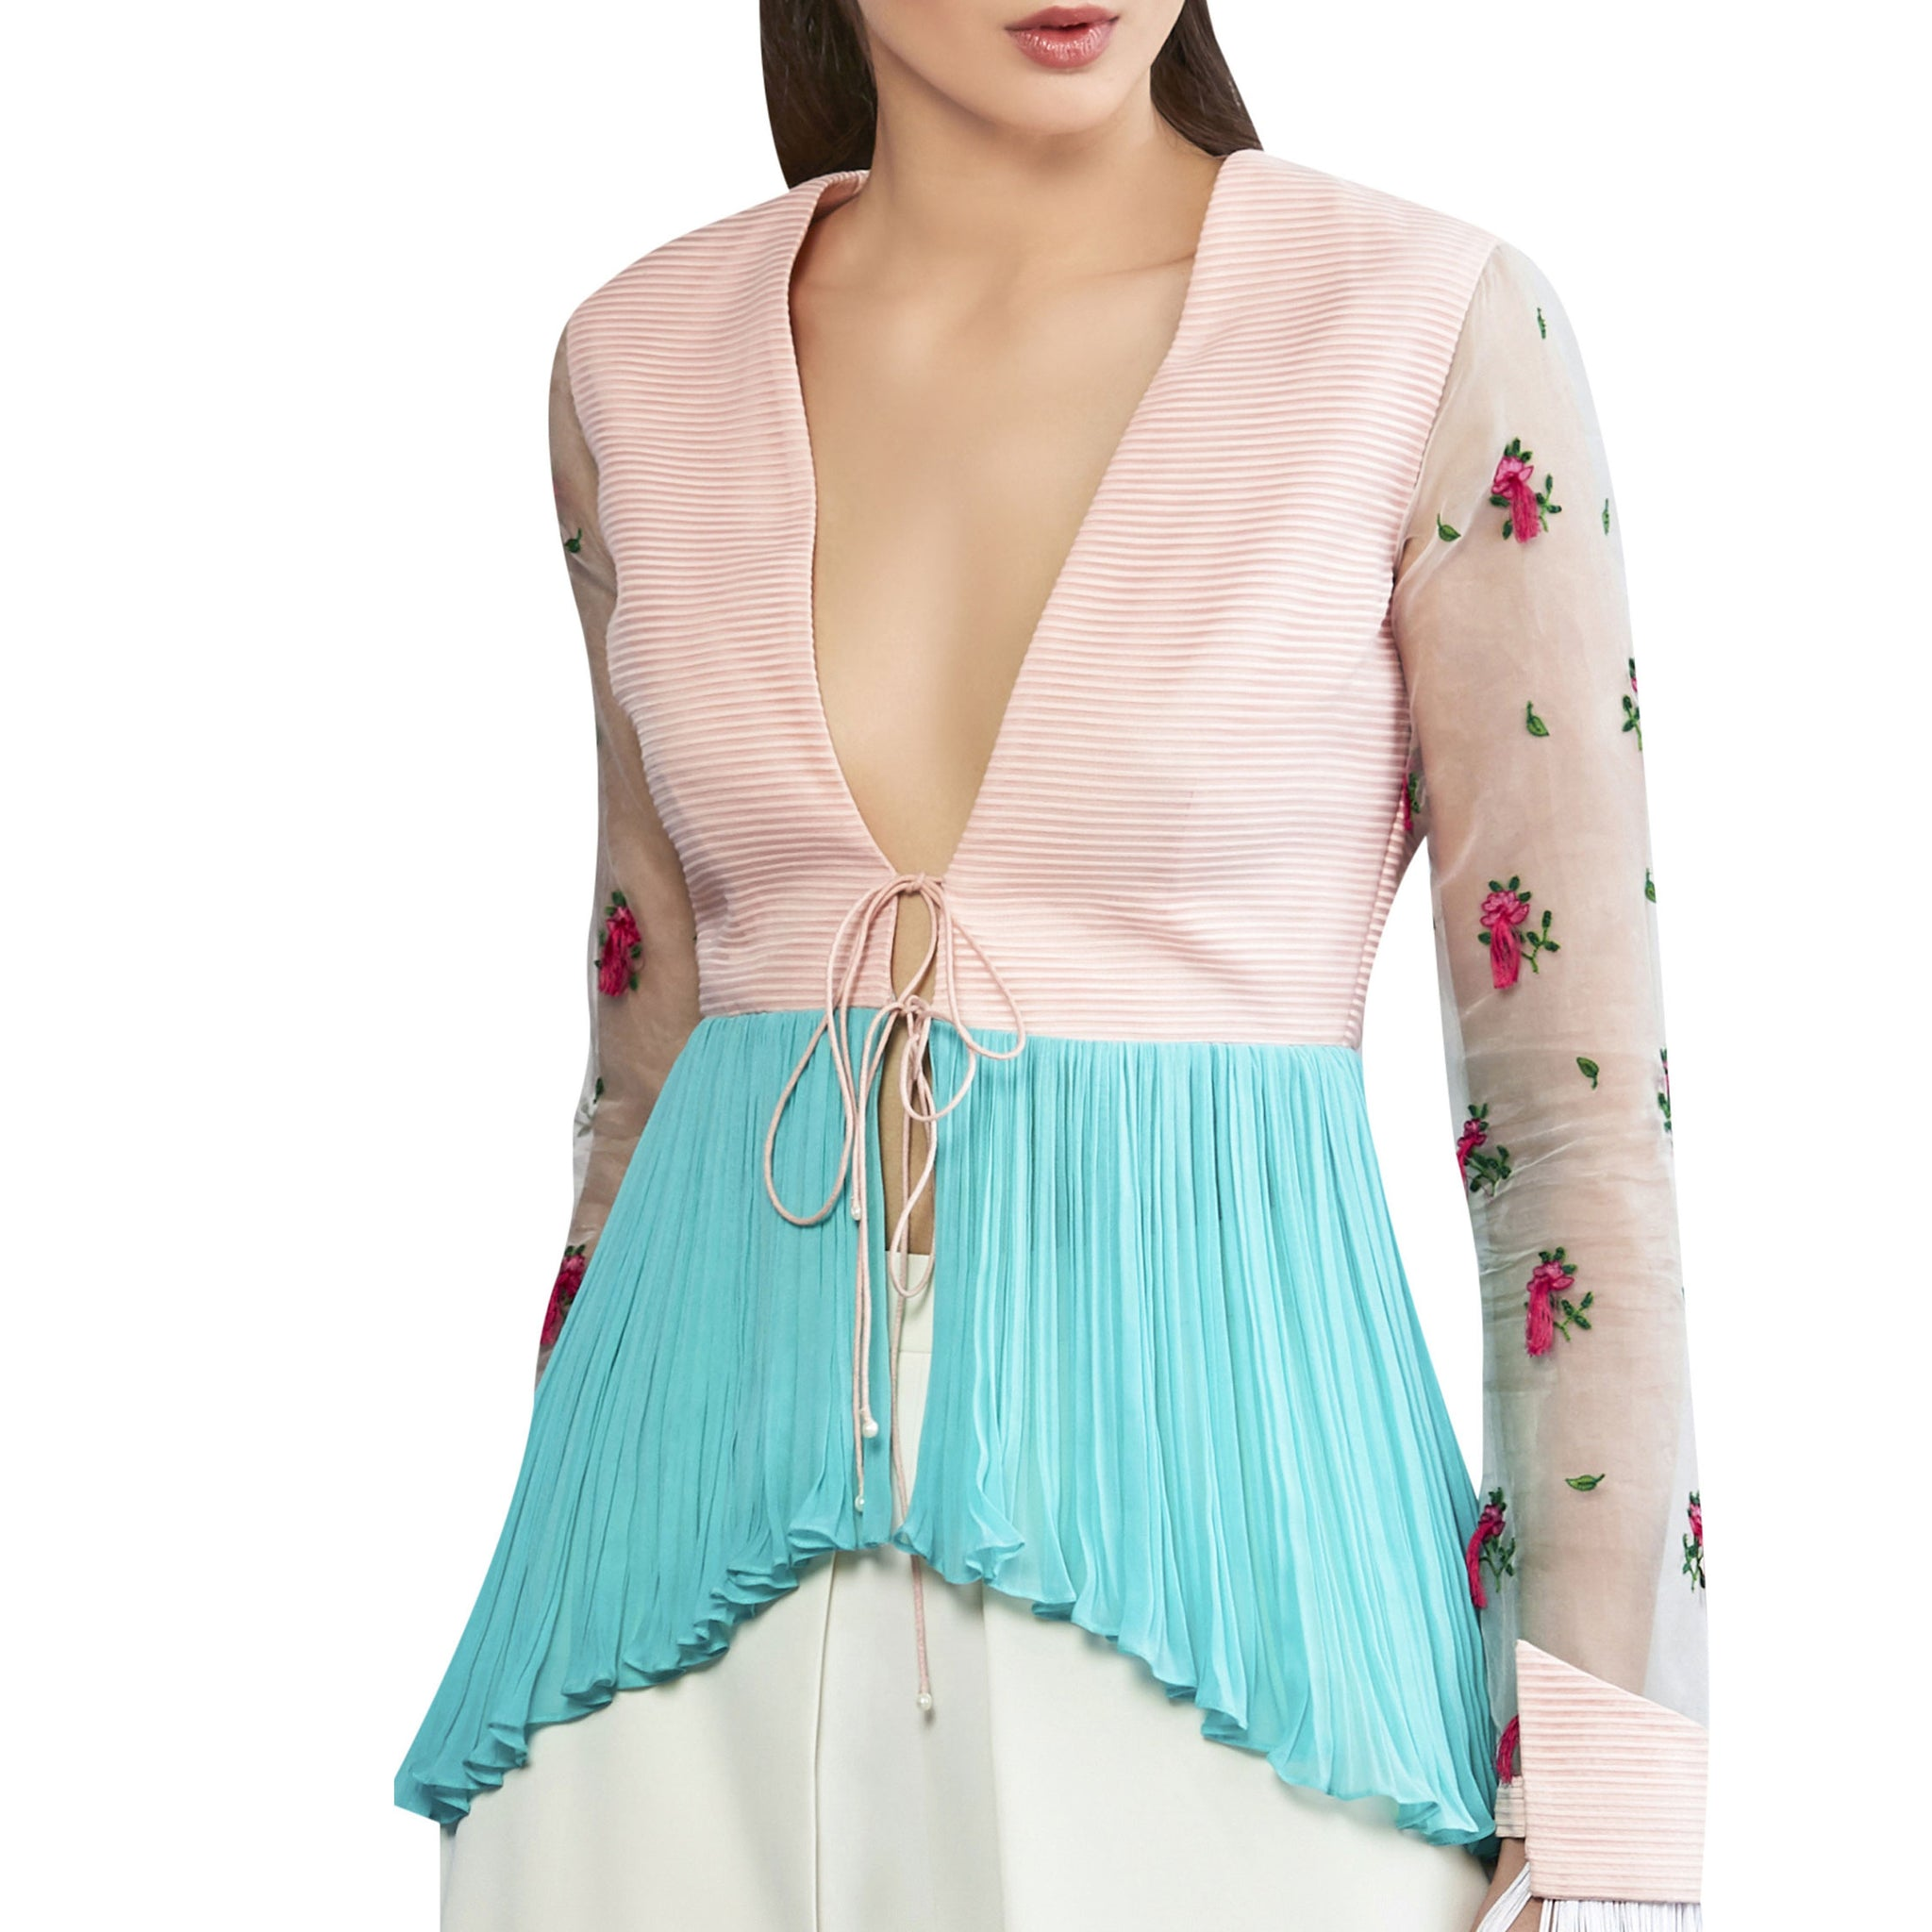 Peplum Jacket with Embroidered Sleeves and Tassles